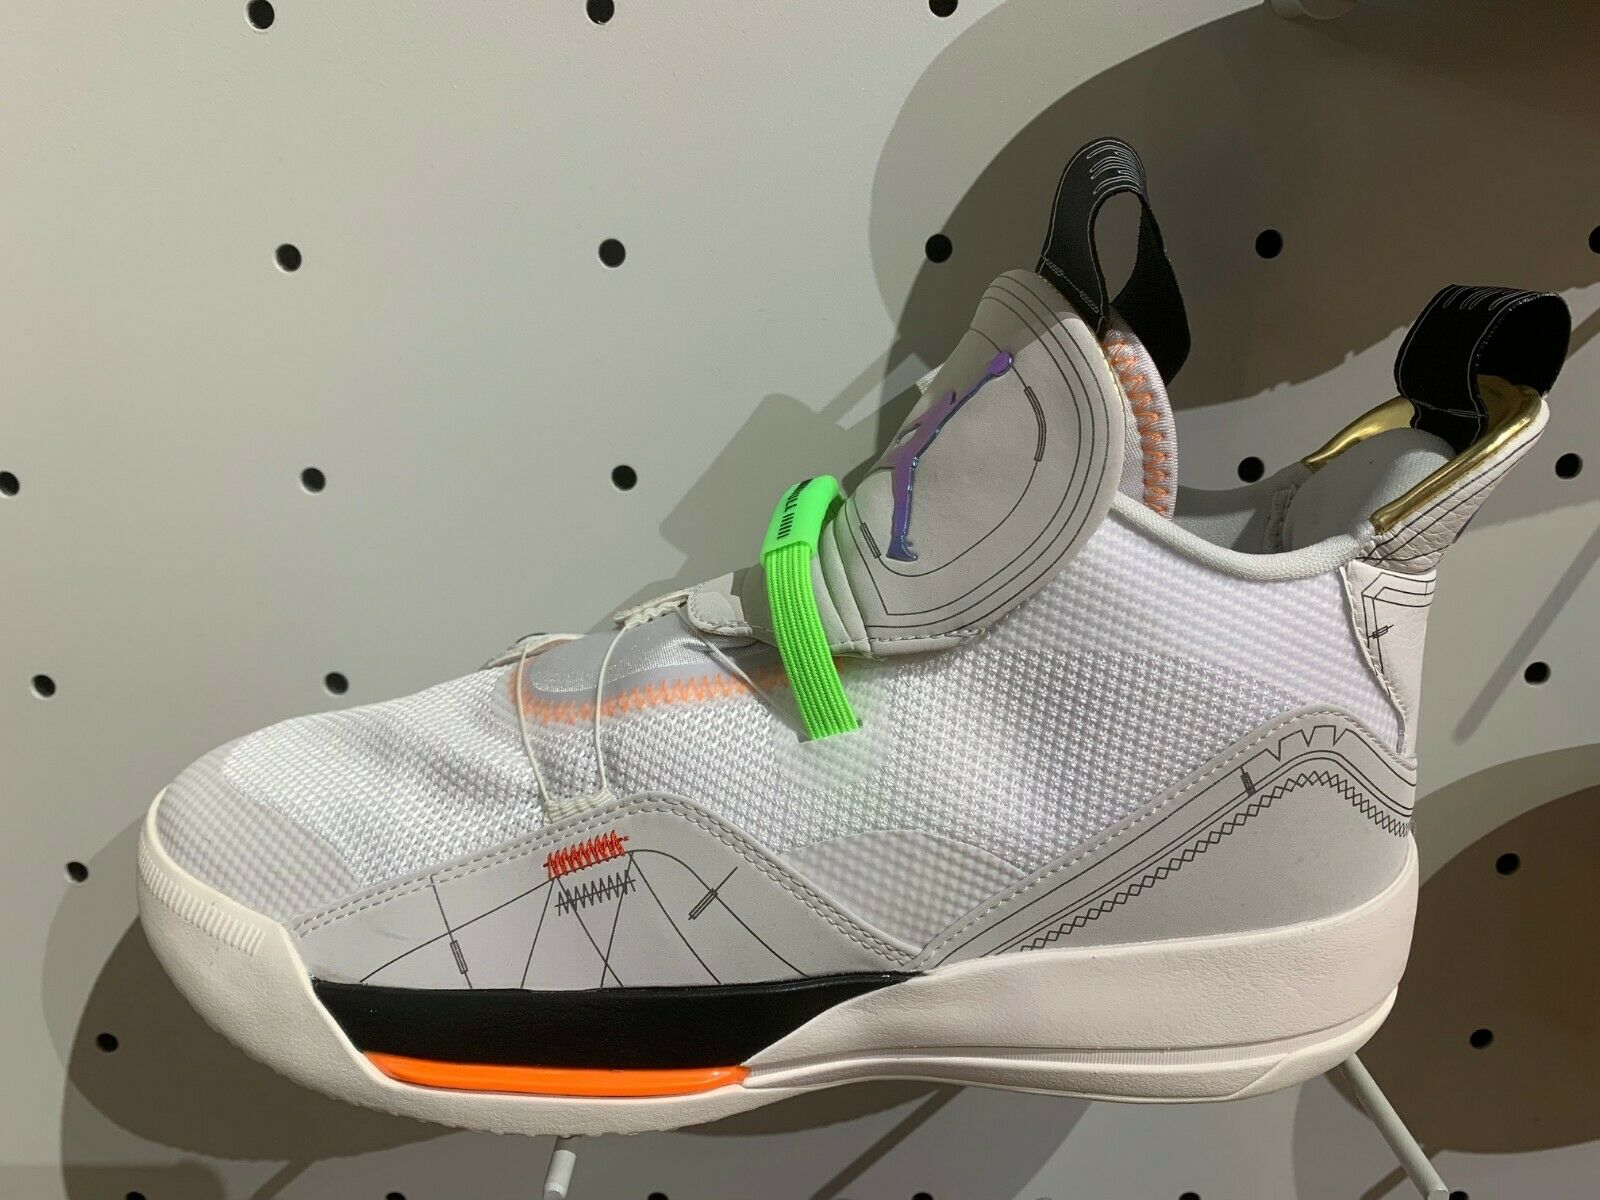 Nike Air Jordan 33 XXXIII Vast Grey Cone White Sail Size 8-14 New A8830-004 DS